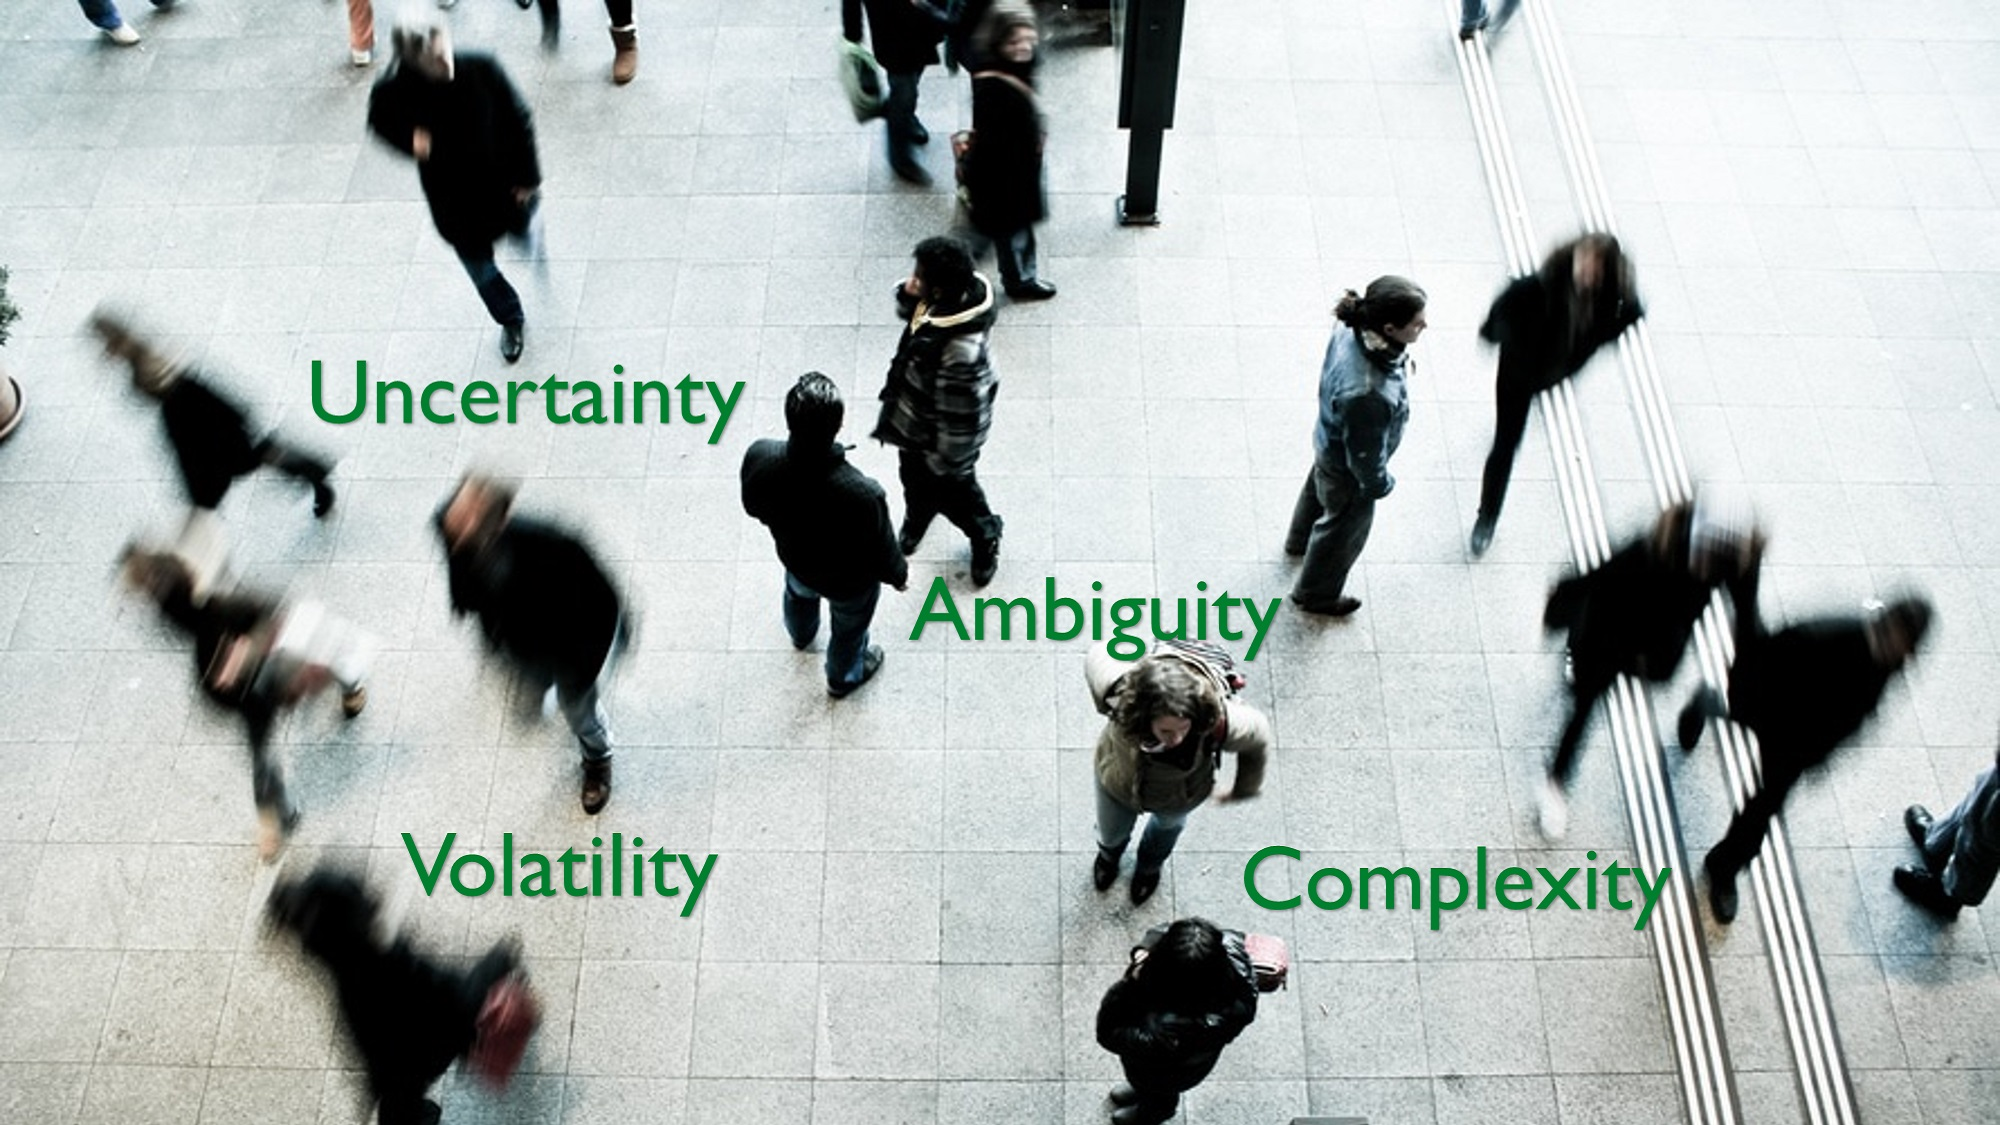 blurred people in motion, diverse headings (complexity, volatility, ambiguity, uncertainty)